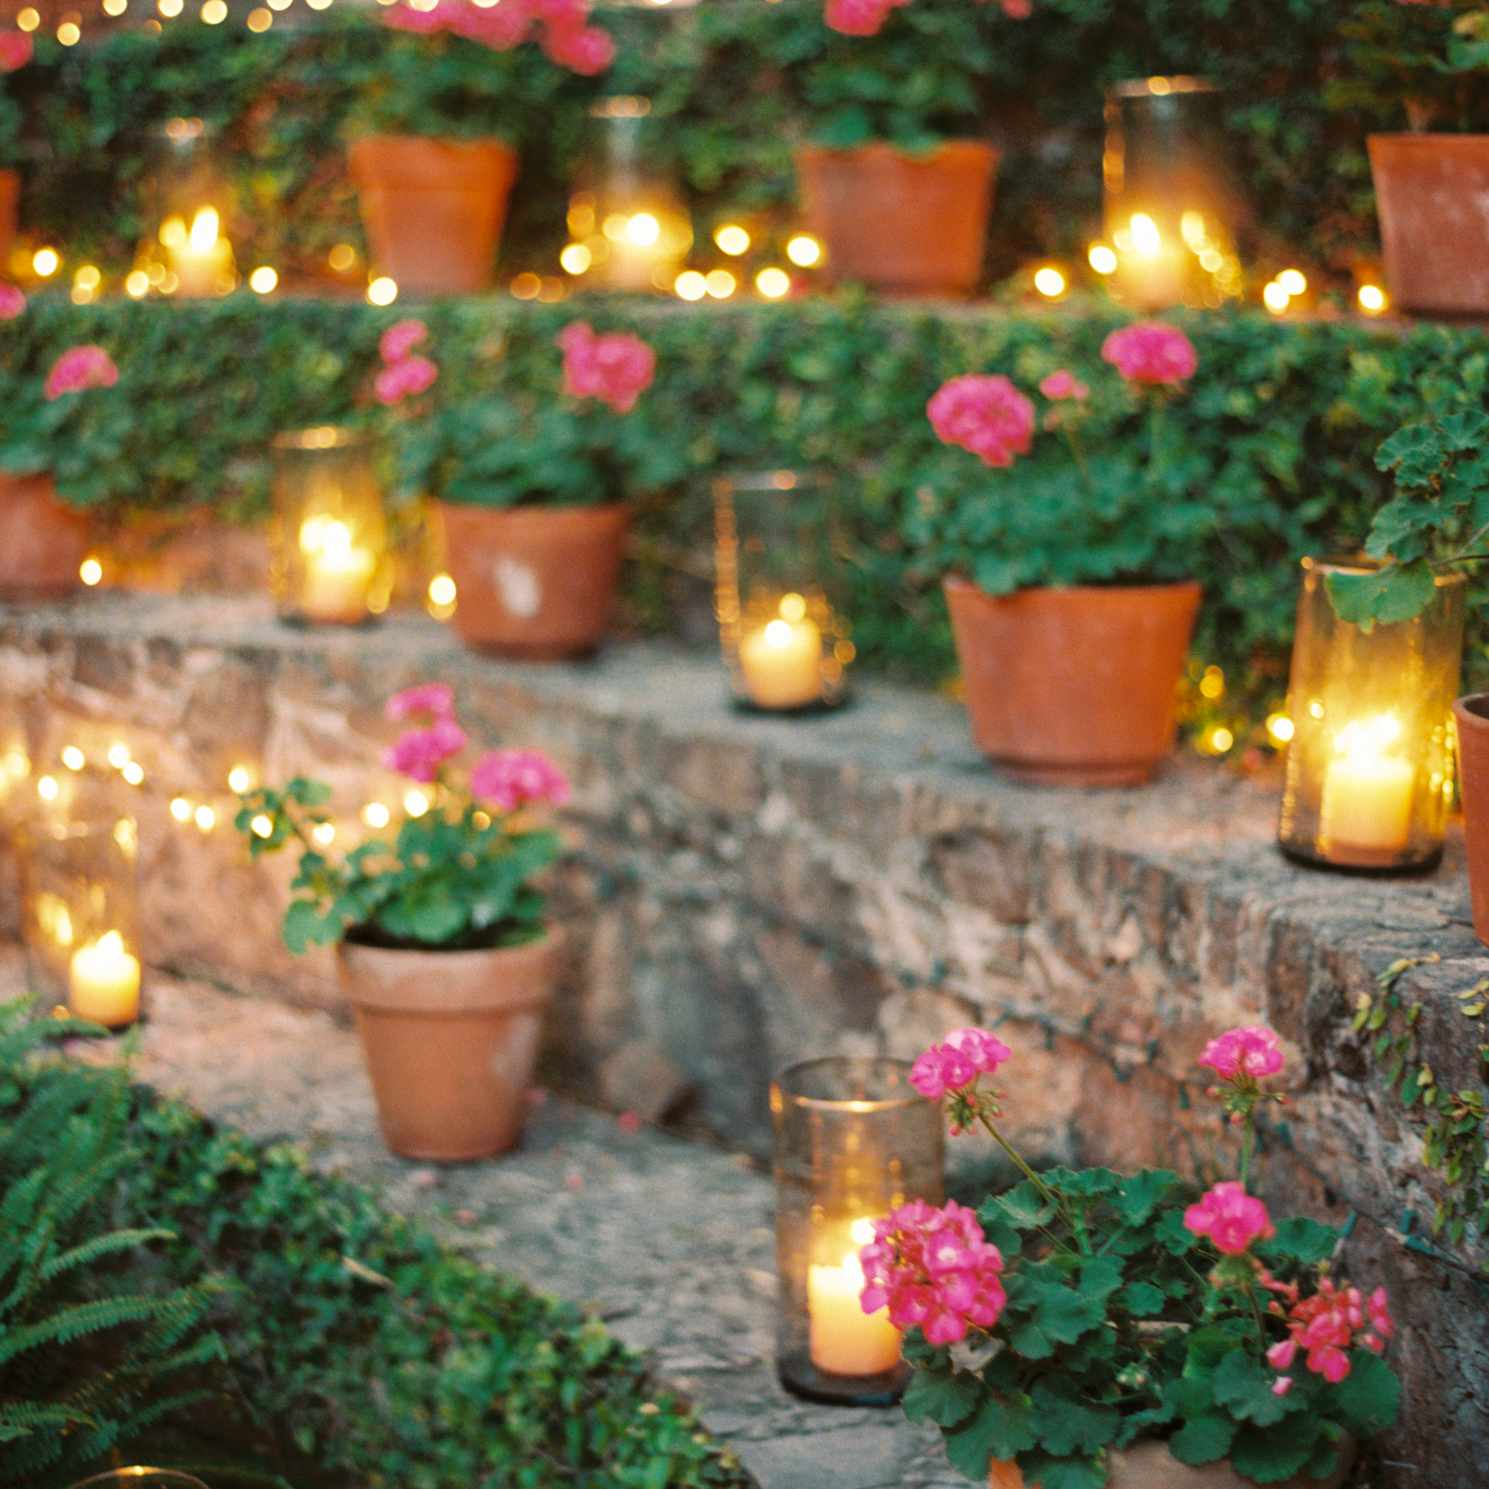 Potted plants and candles